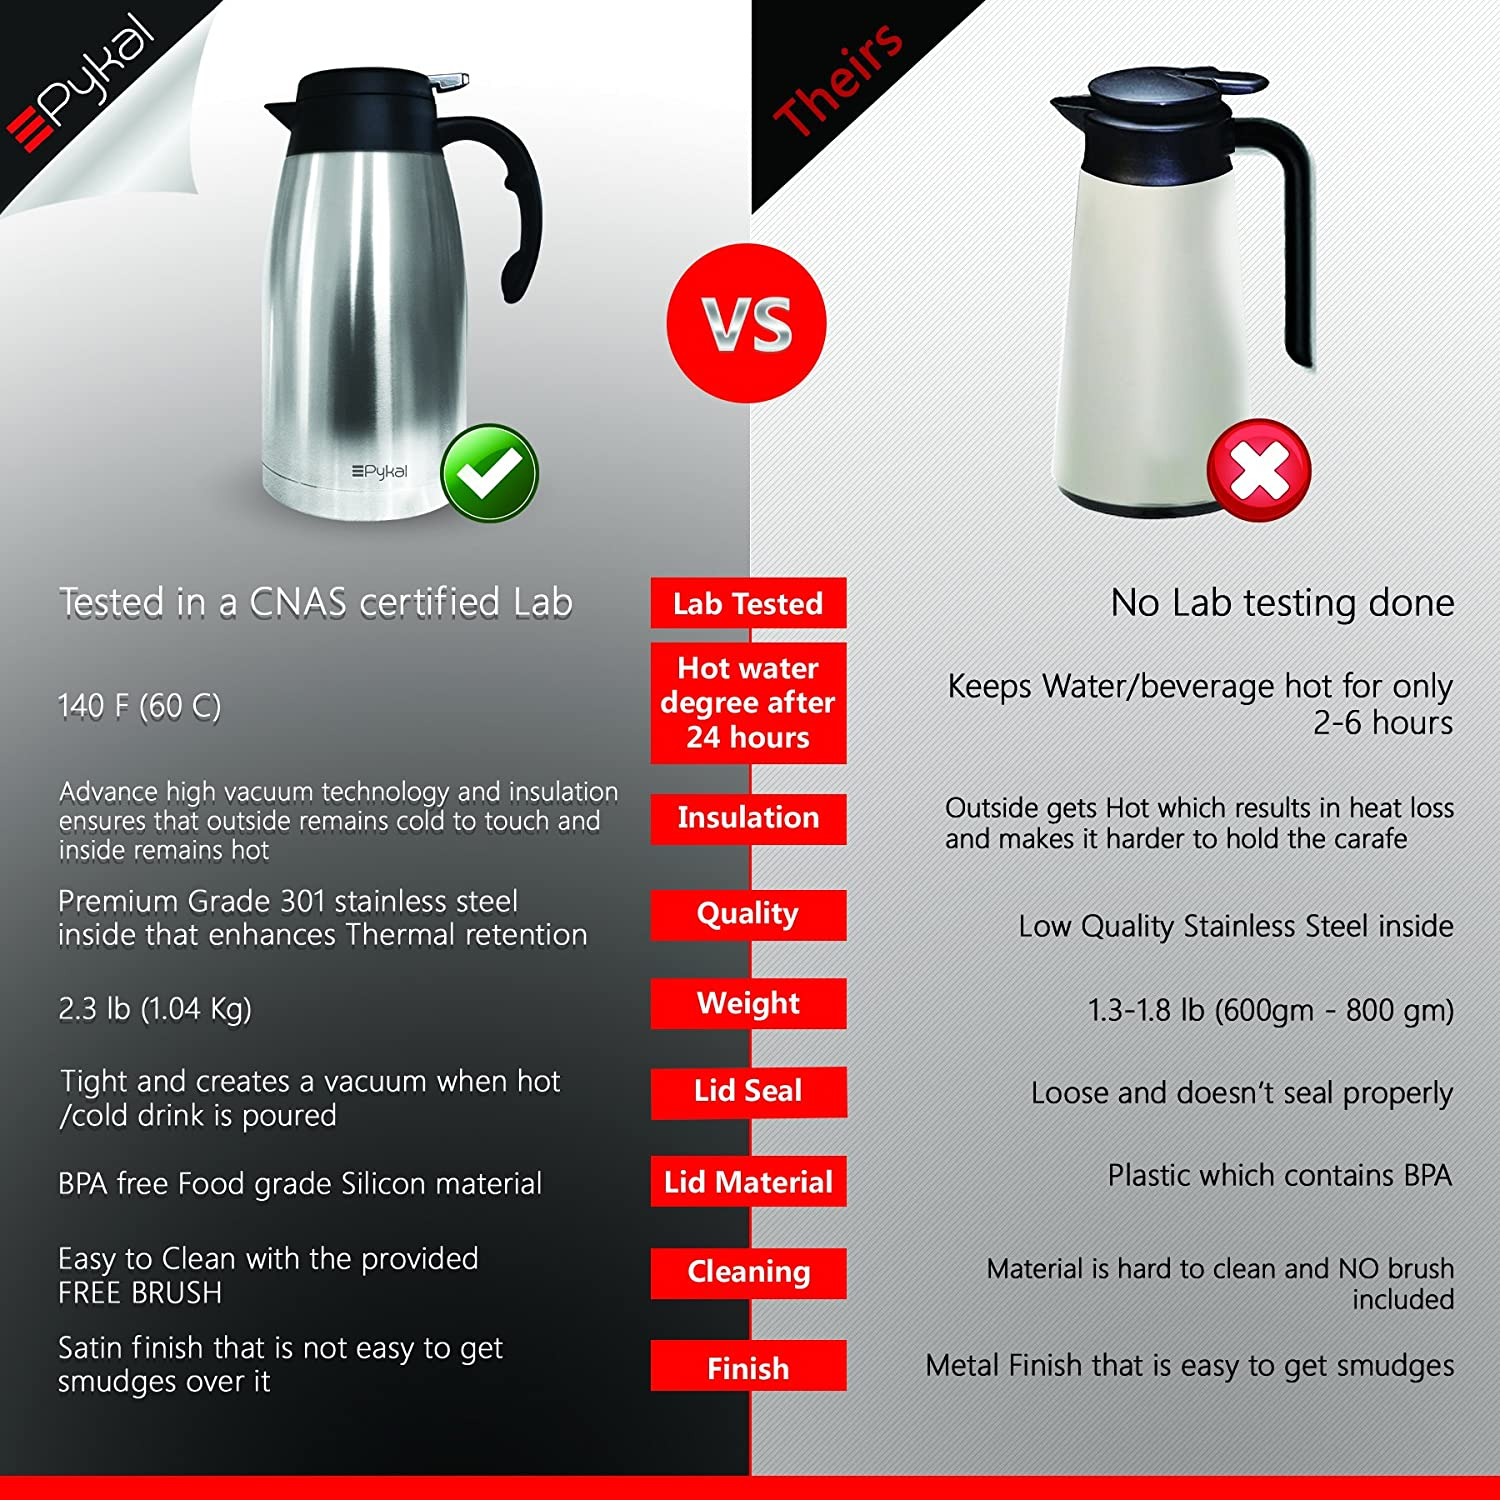 SILVER/–Satin Look HEAVY-DUTY Double Wall Vacuum Insulated Carafe Thermal Coffee Pot Thermal Coffee Carafe by PYKAL 68Oz//2 liter FREE Cleaning Brush Beverage Dispenser LAB TESTED 24HR/≥140/°F